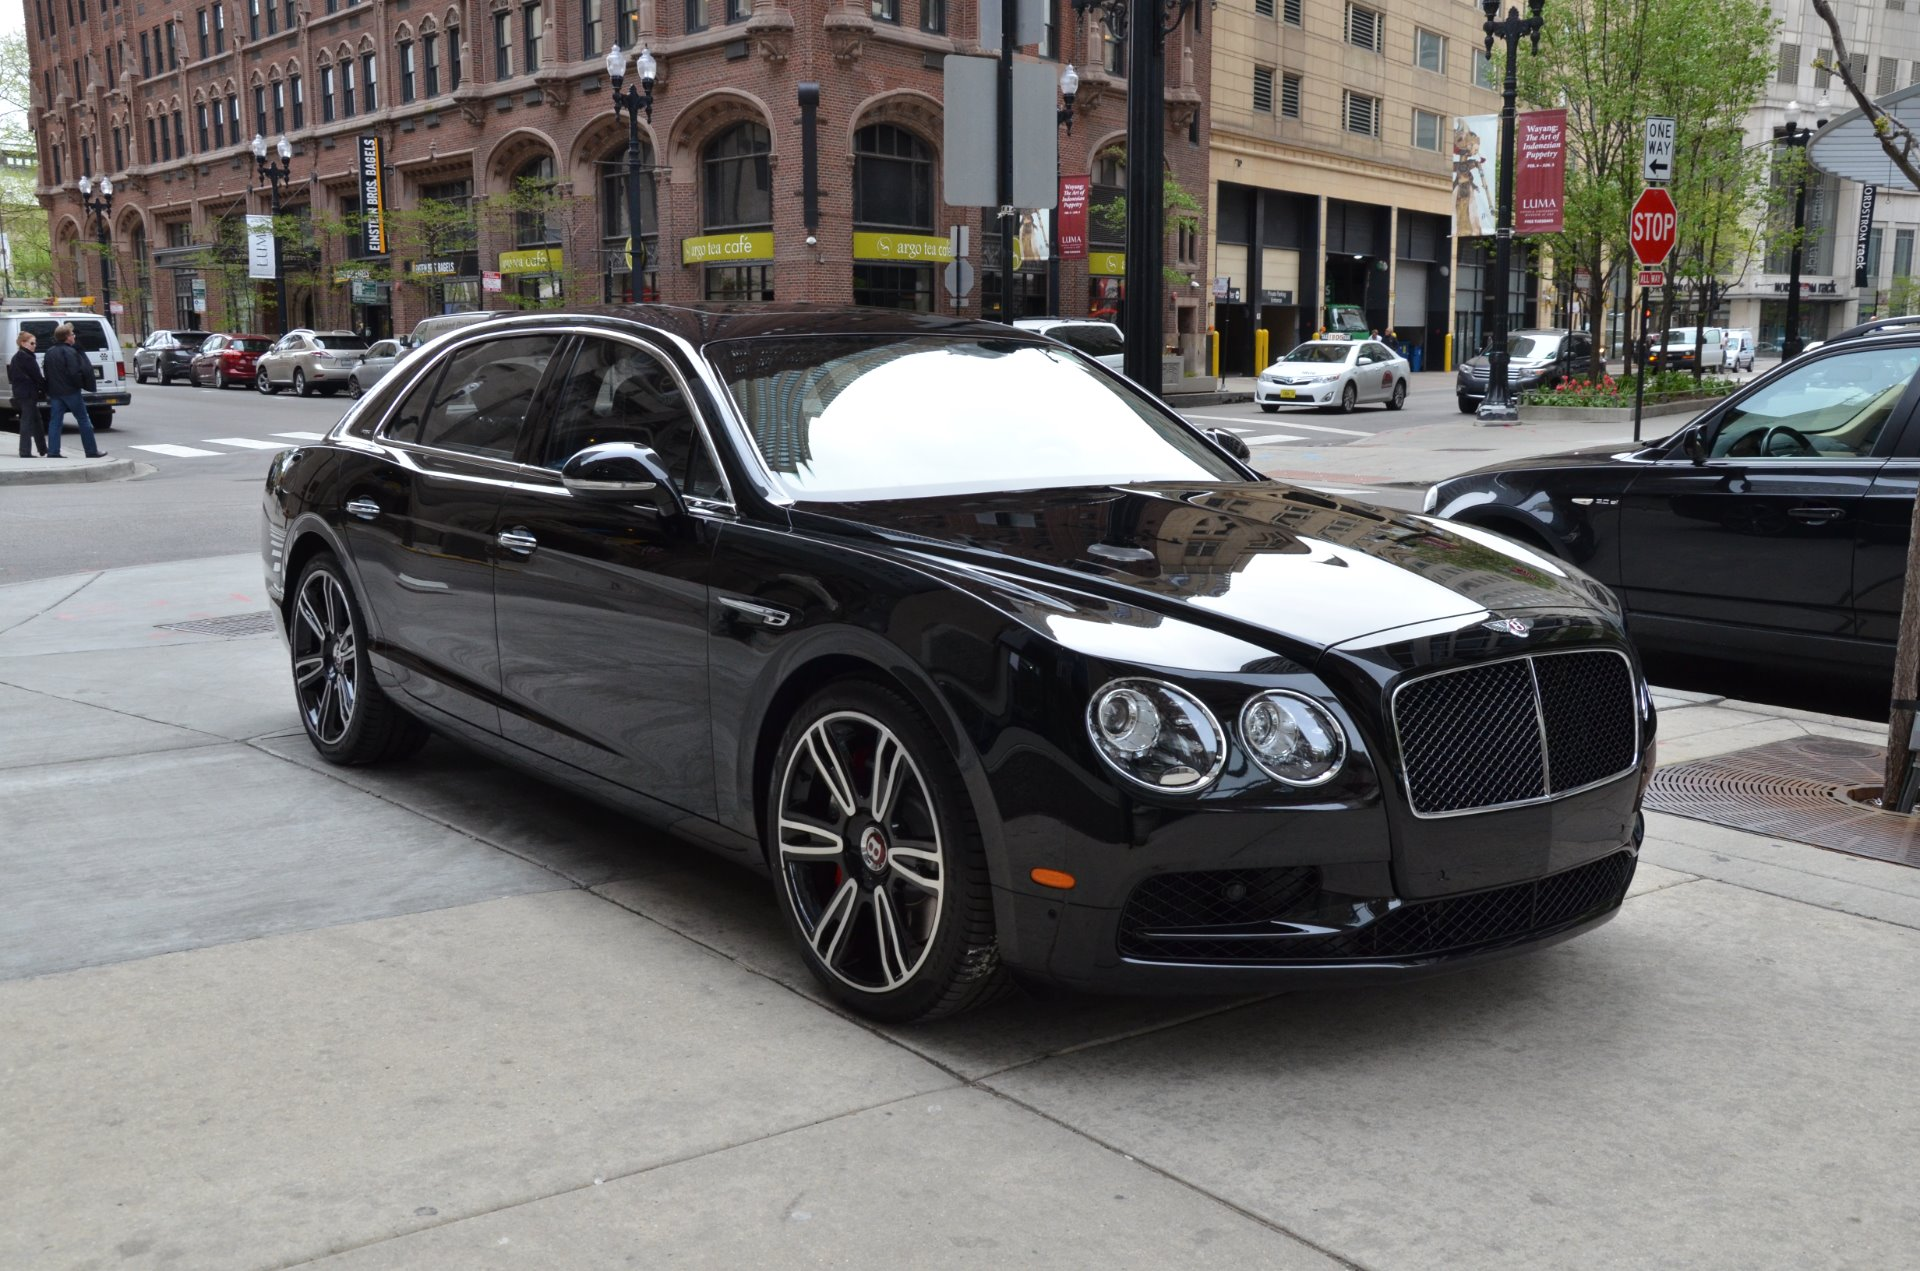 2017 Bentley Flying Spur V8 S Stock # B923-S For Sale Near